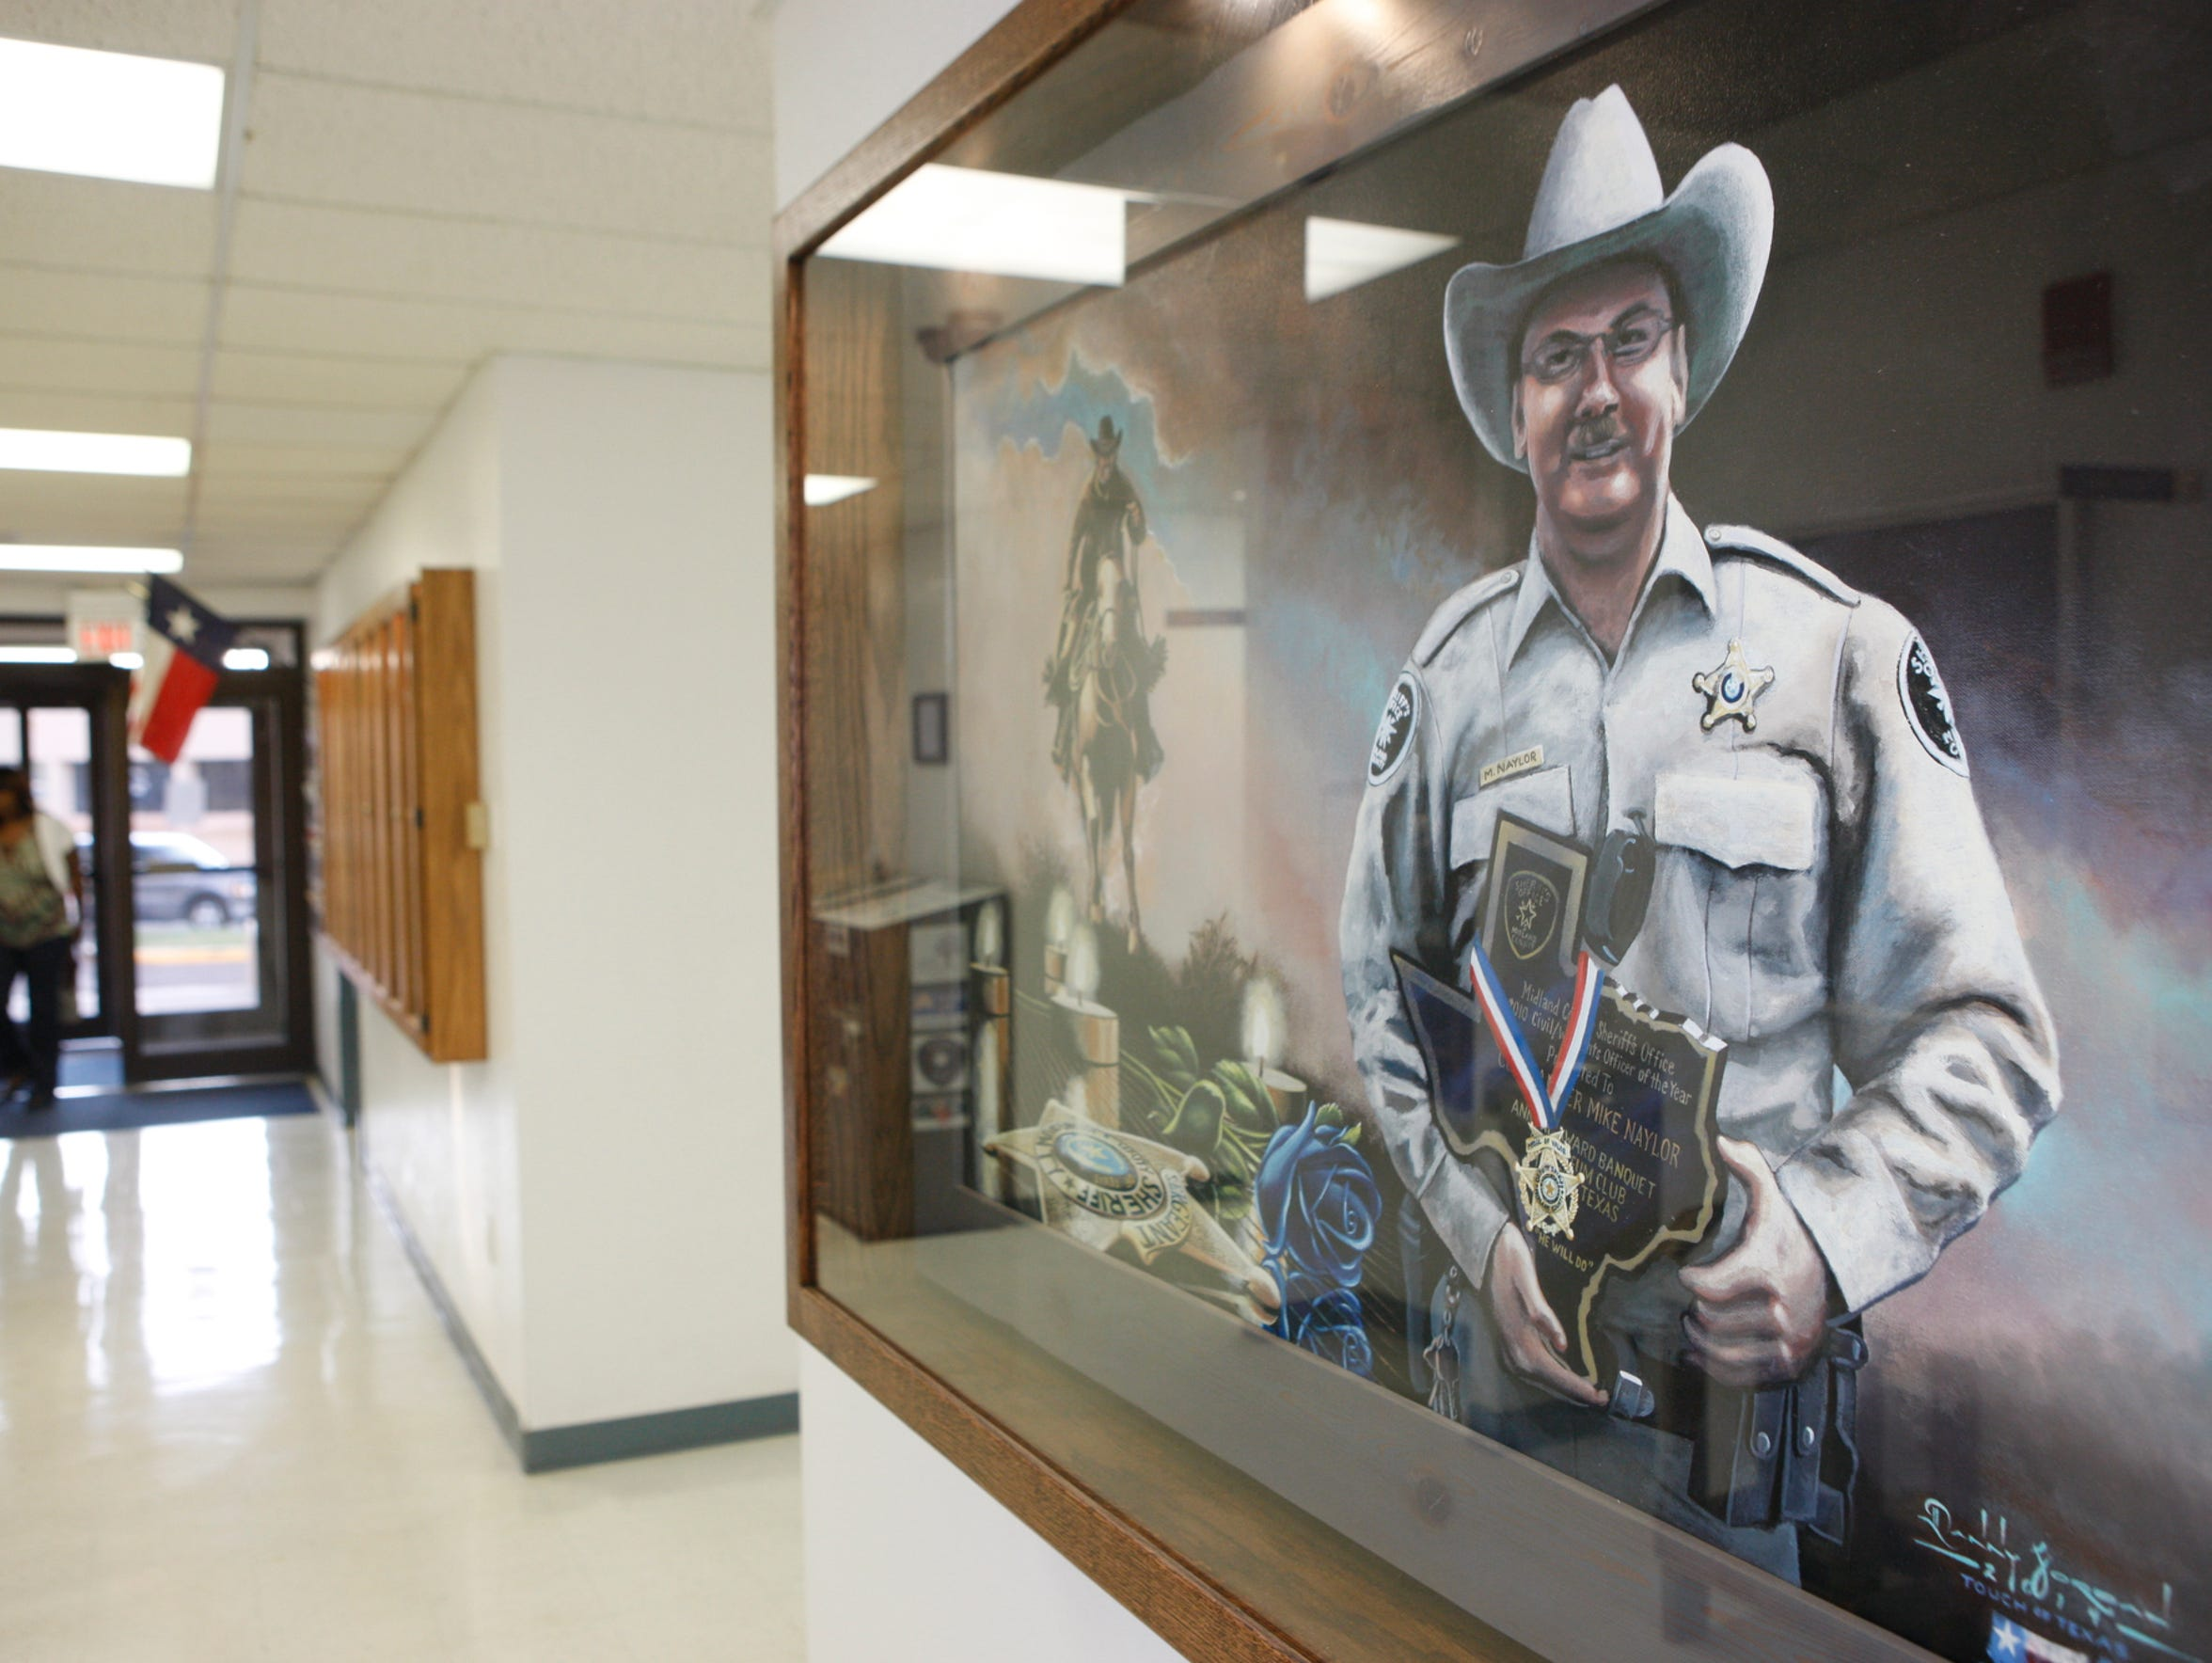 A portrait of Sgt. Michael Naylor hangs in the William